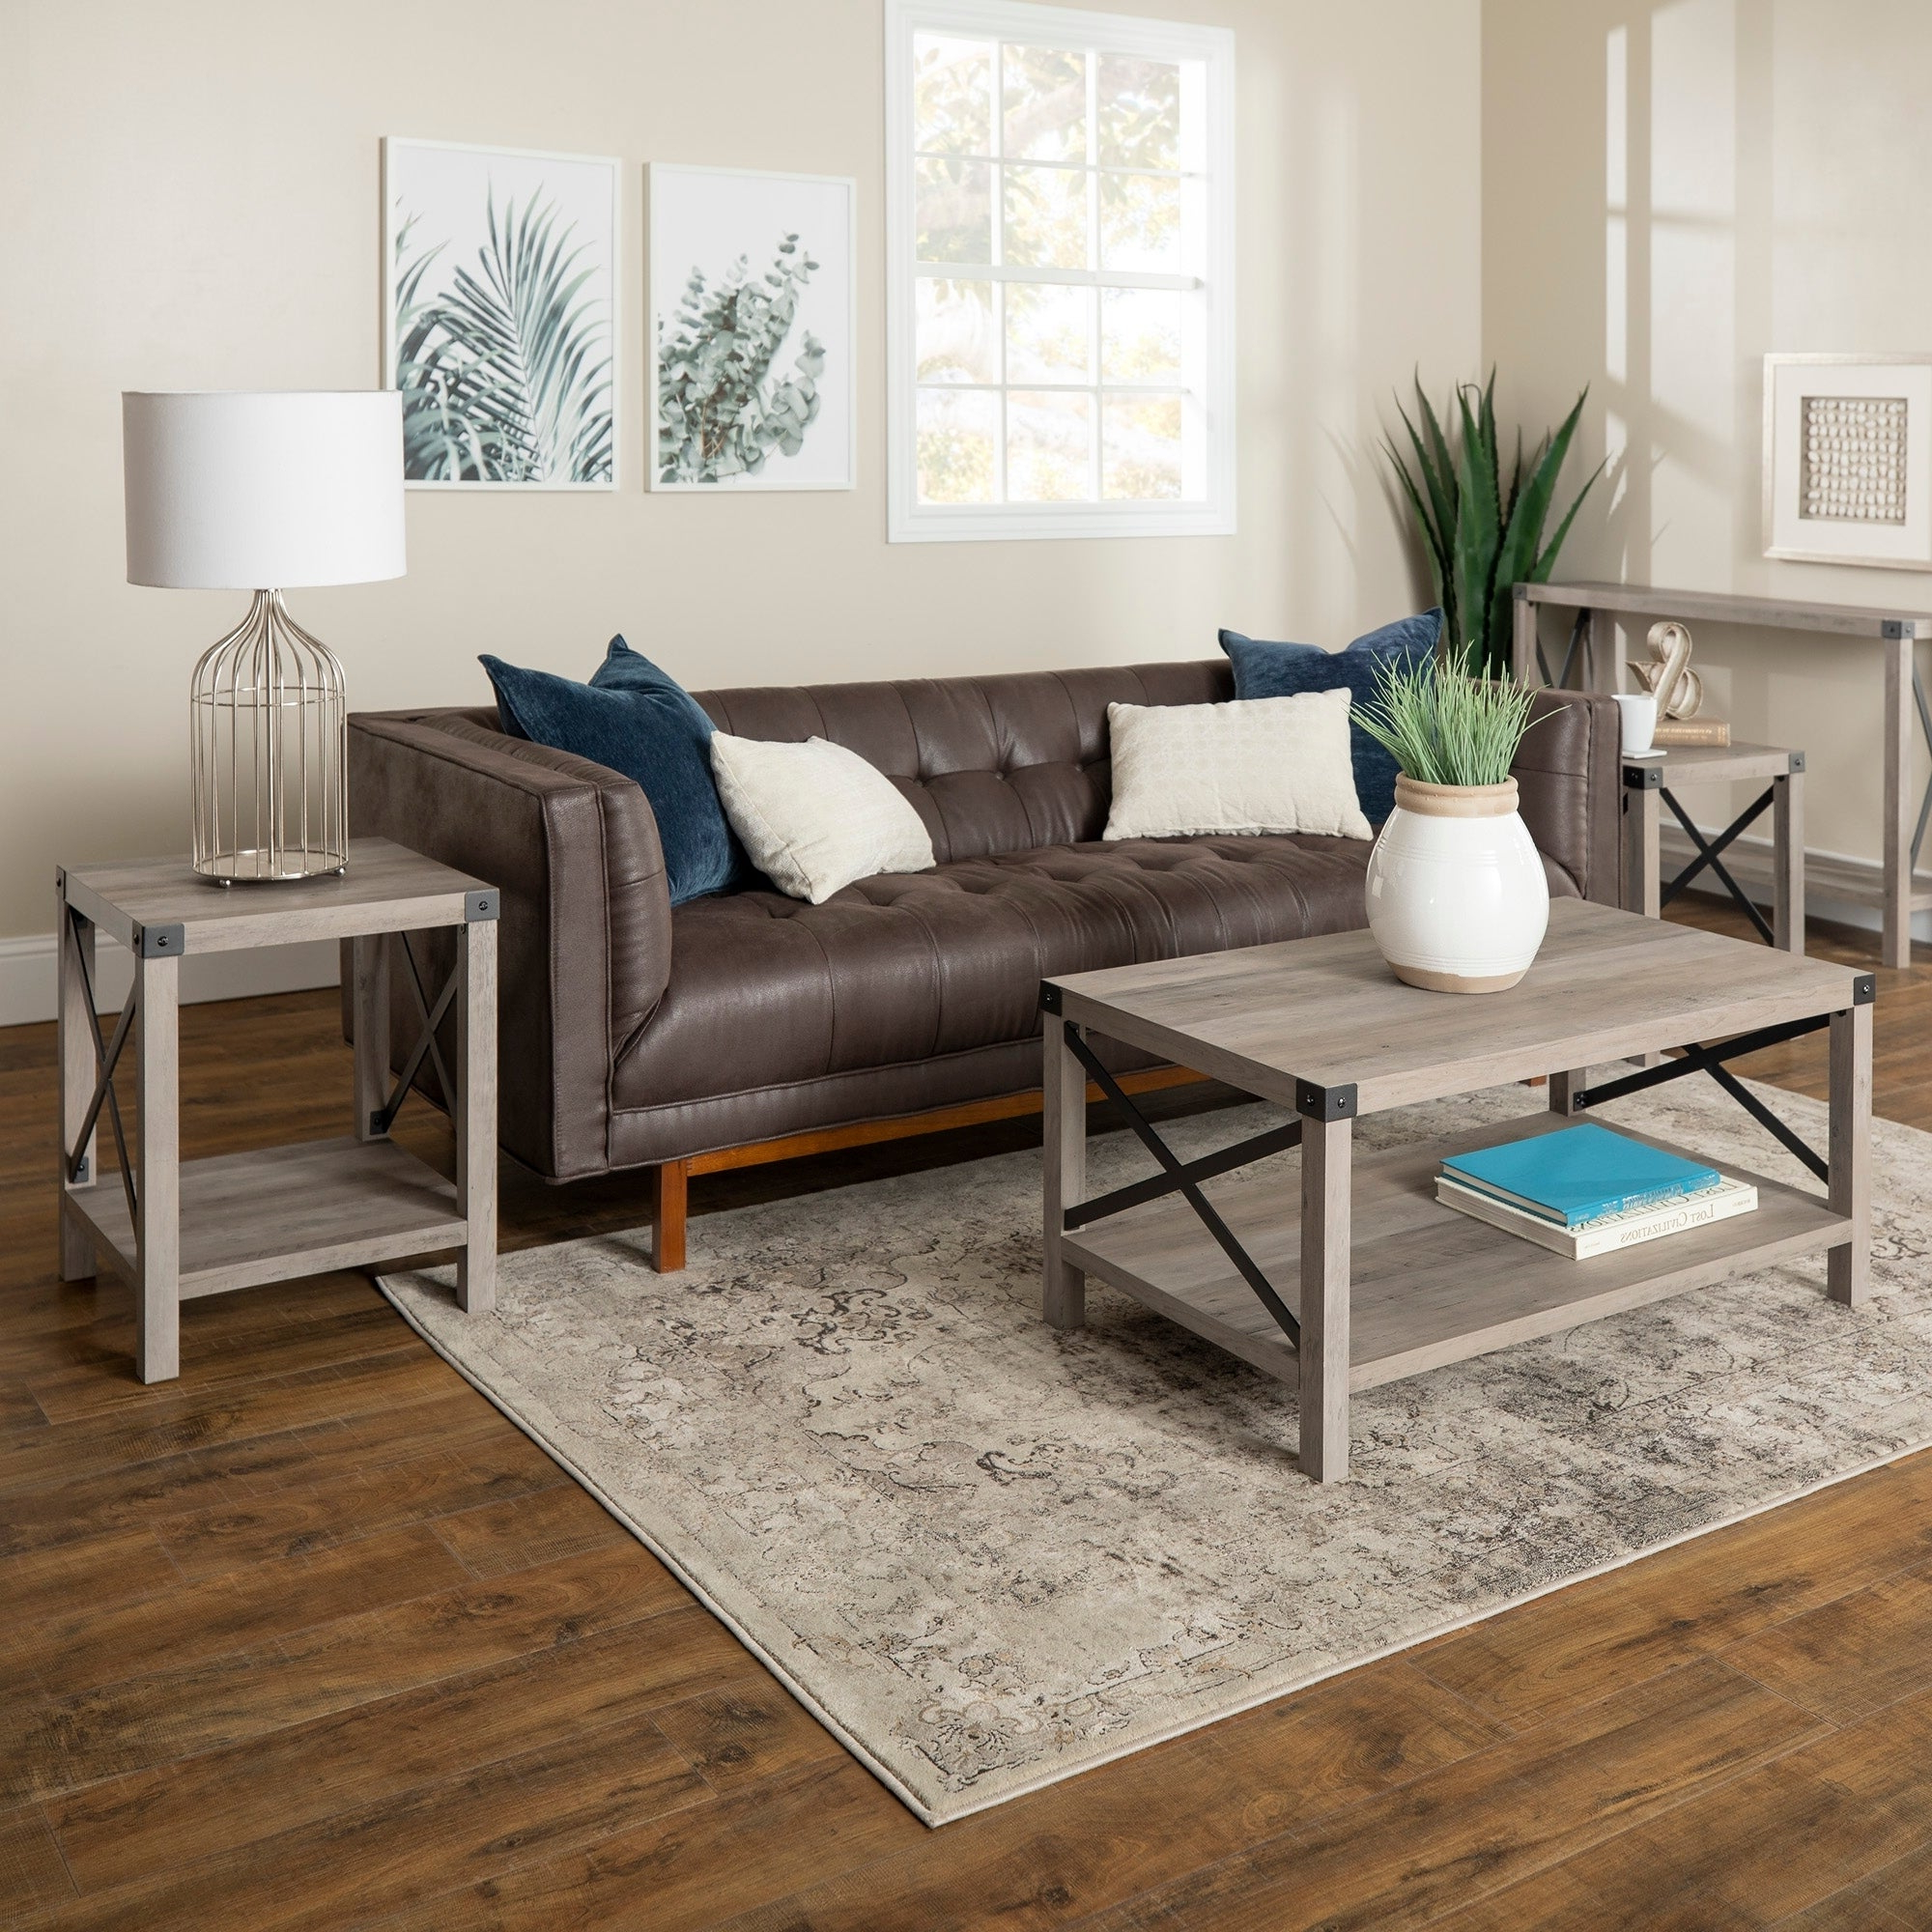 The Gray Barn 3 Piece Metal X Table Set – 40 X 22 X 18h With Preferred The Gray Barn Kujawa Metal X Coffee Tables – 40 X 22 X 18h (View 20 of 20)